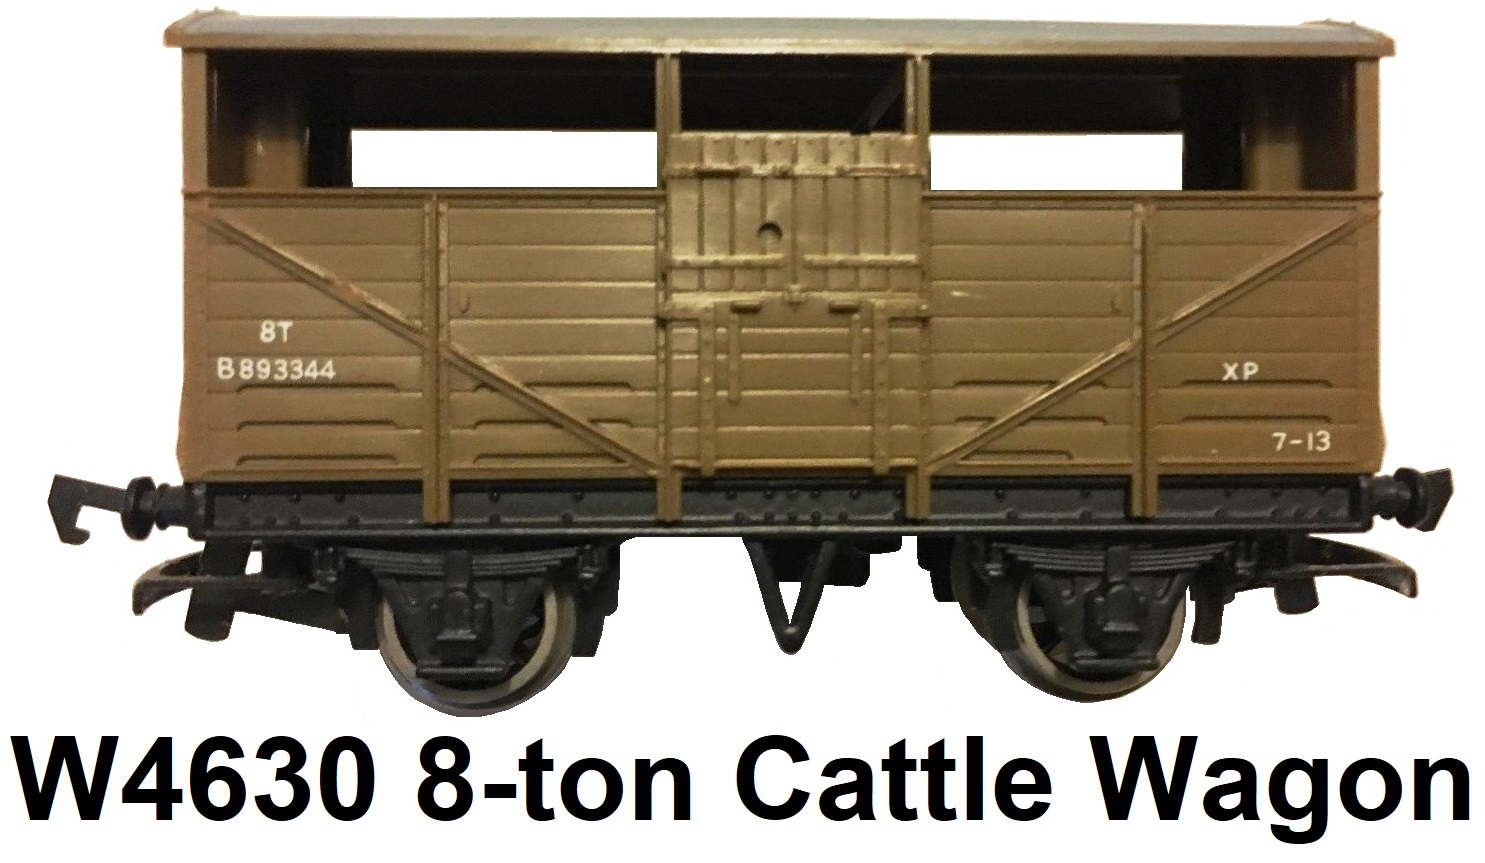 G & R Wrenn Railways OO/HO gauge W4630 8-ton Cattle Wagon #893344